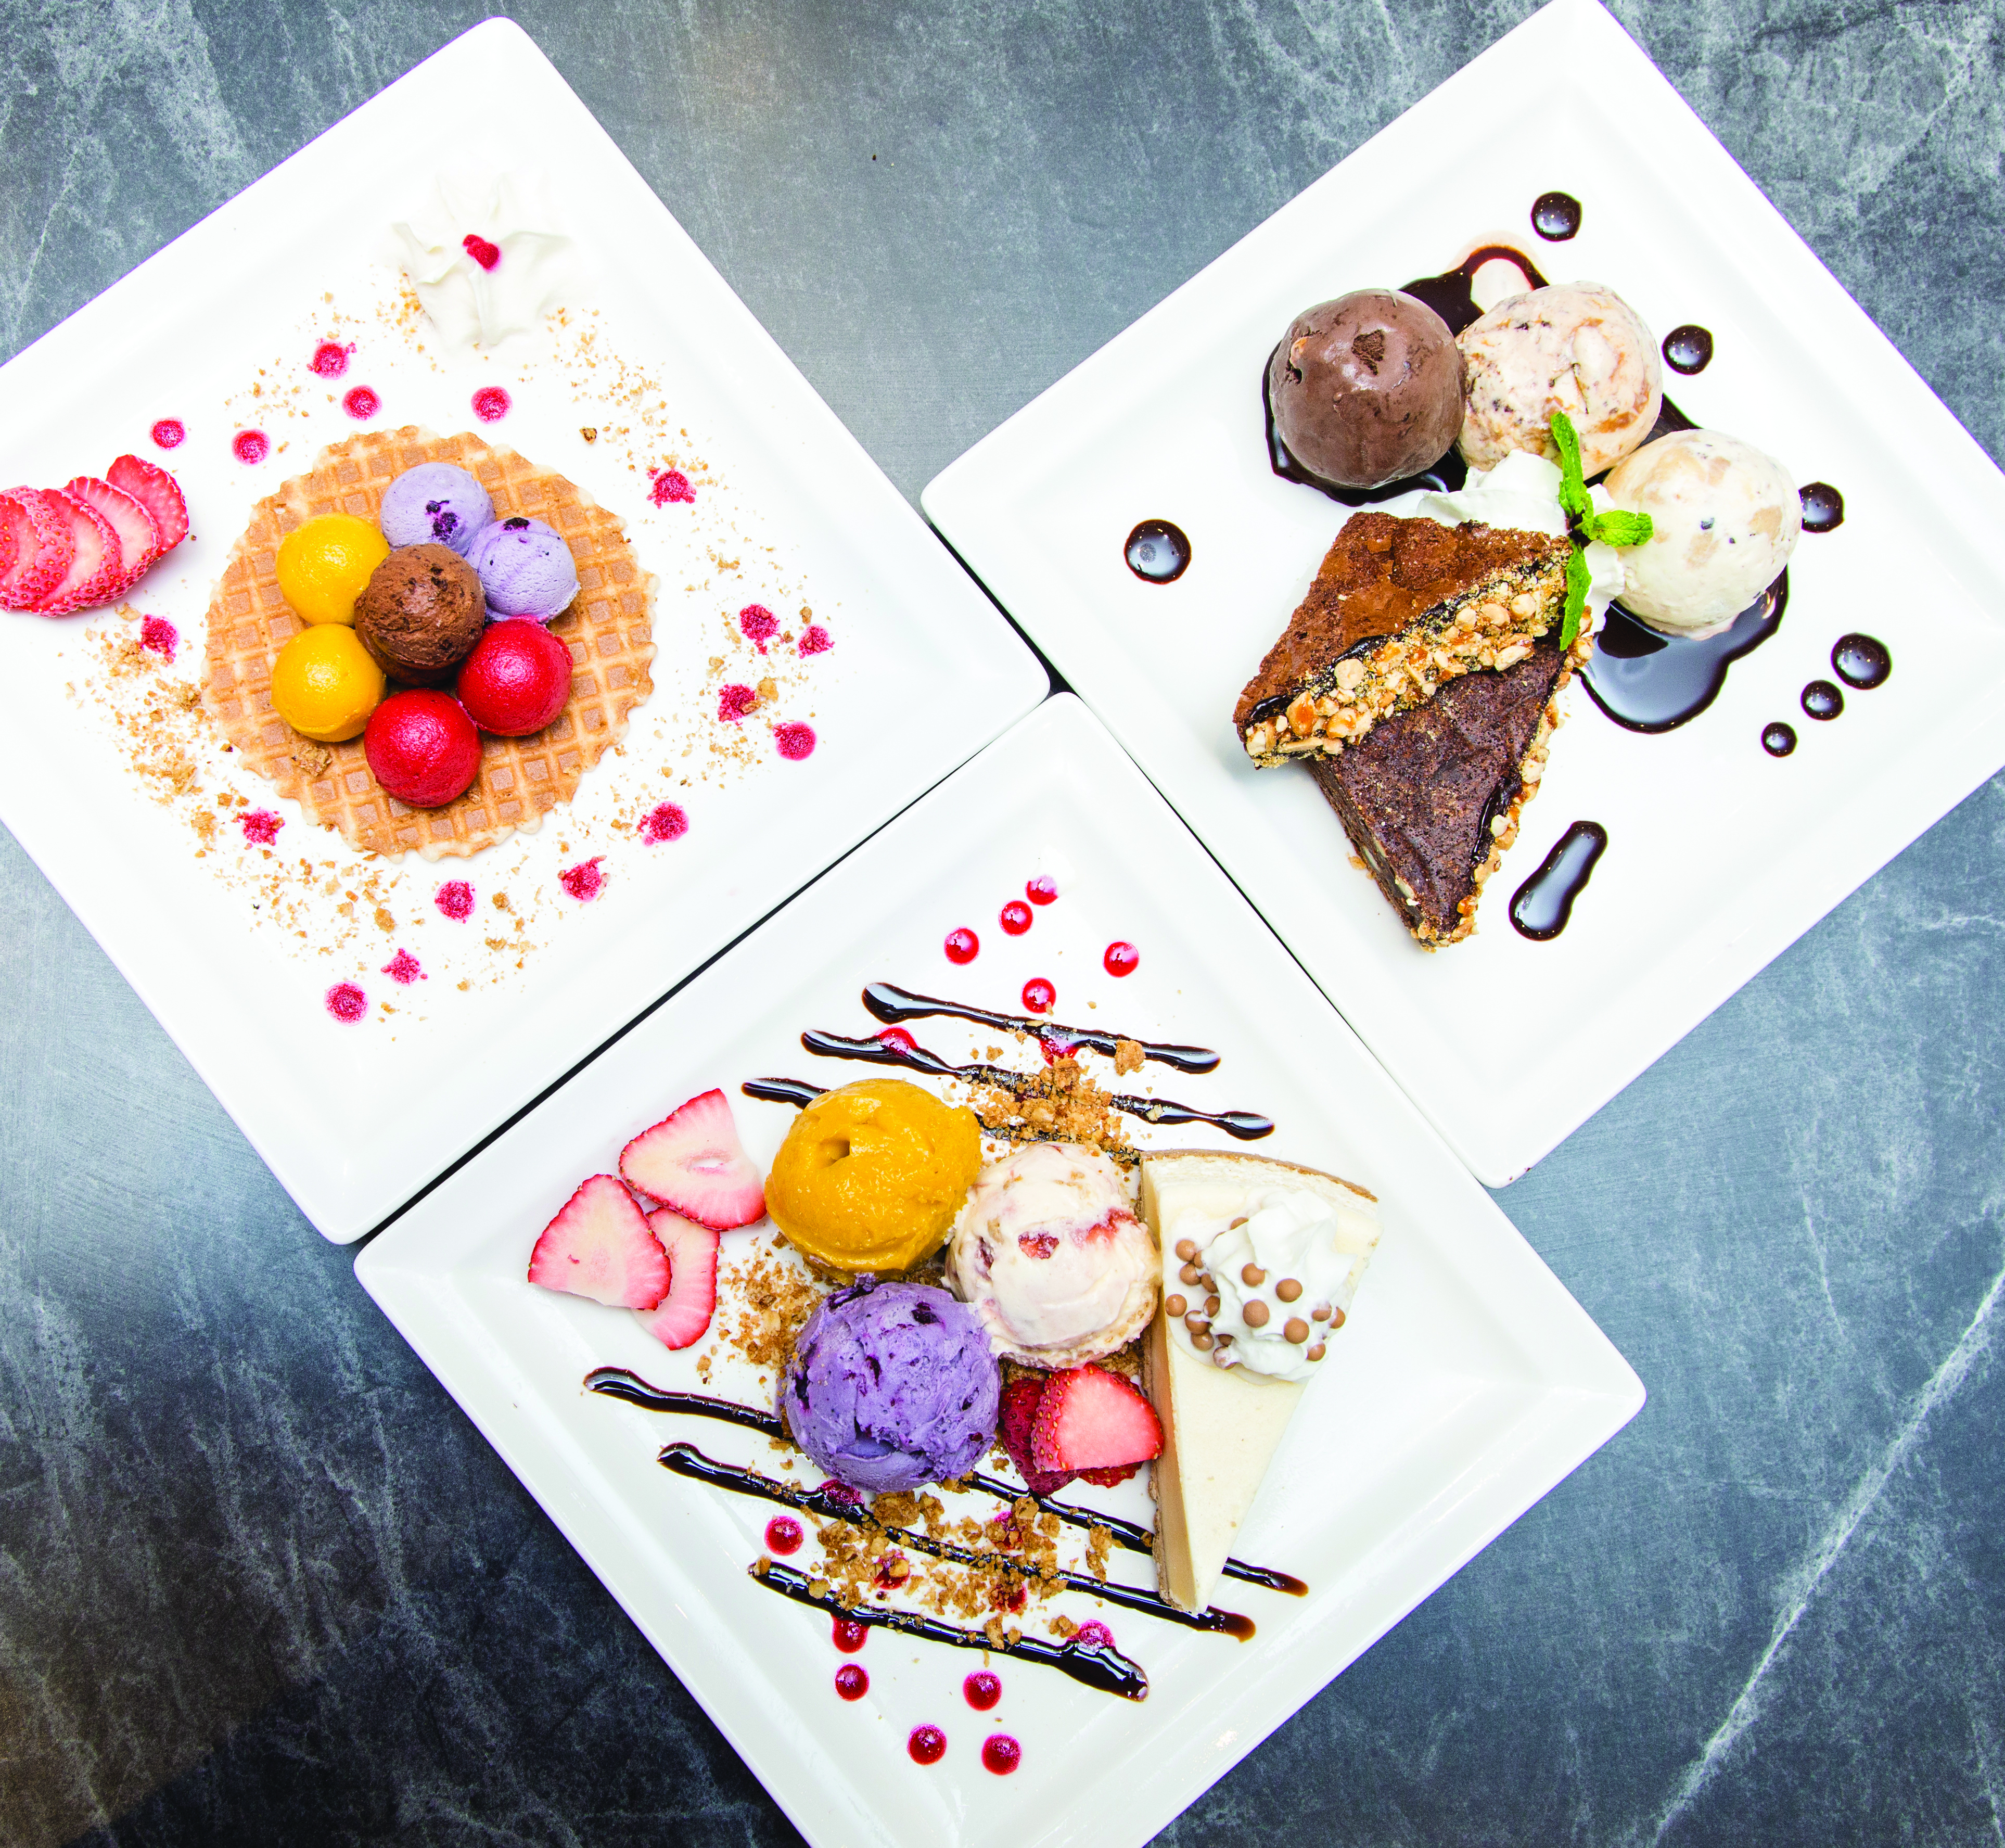 Try out the exotic ice cream flavours at Haagen-Dazs